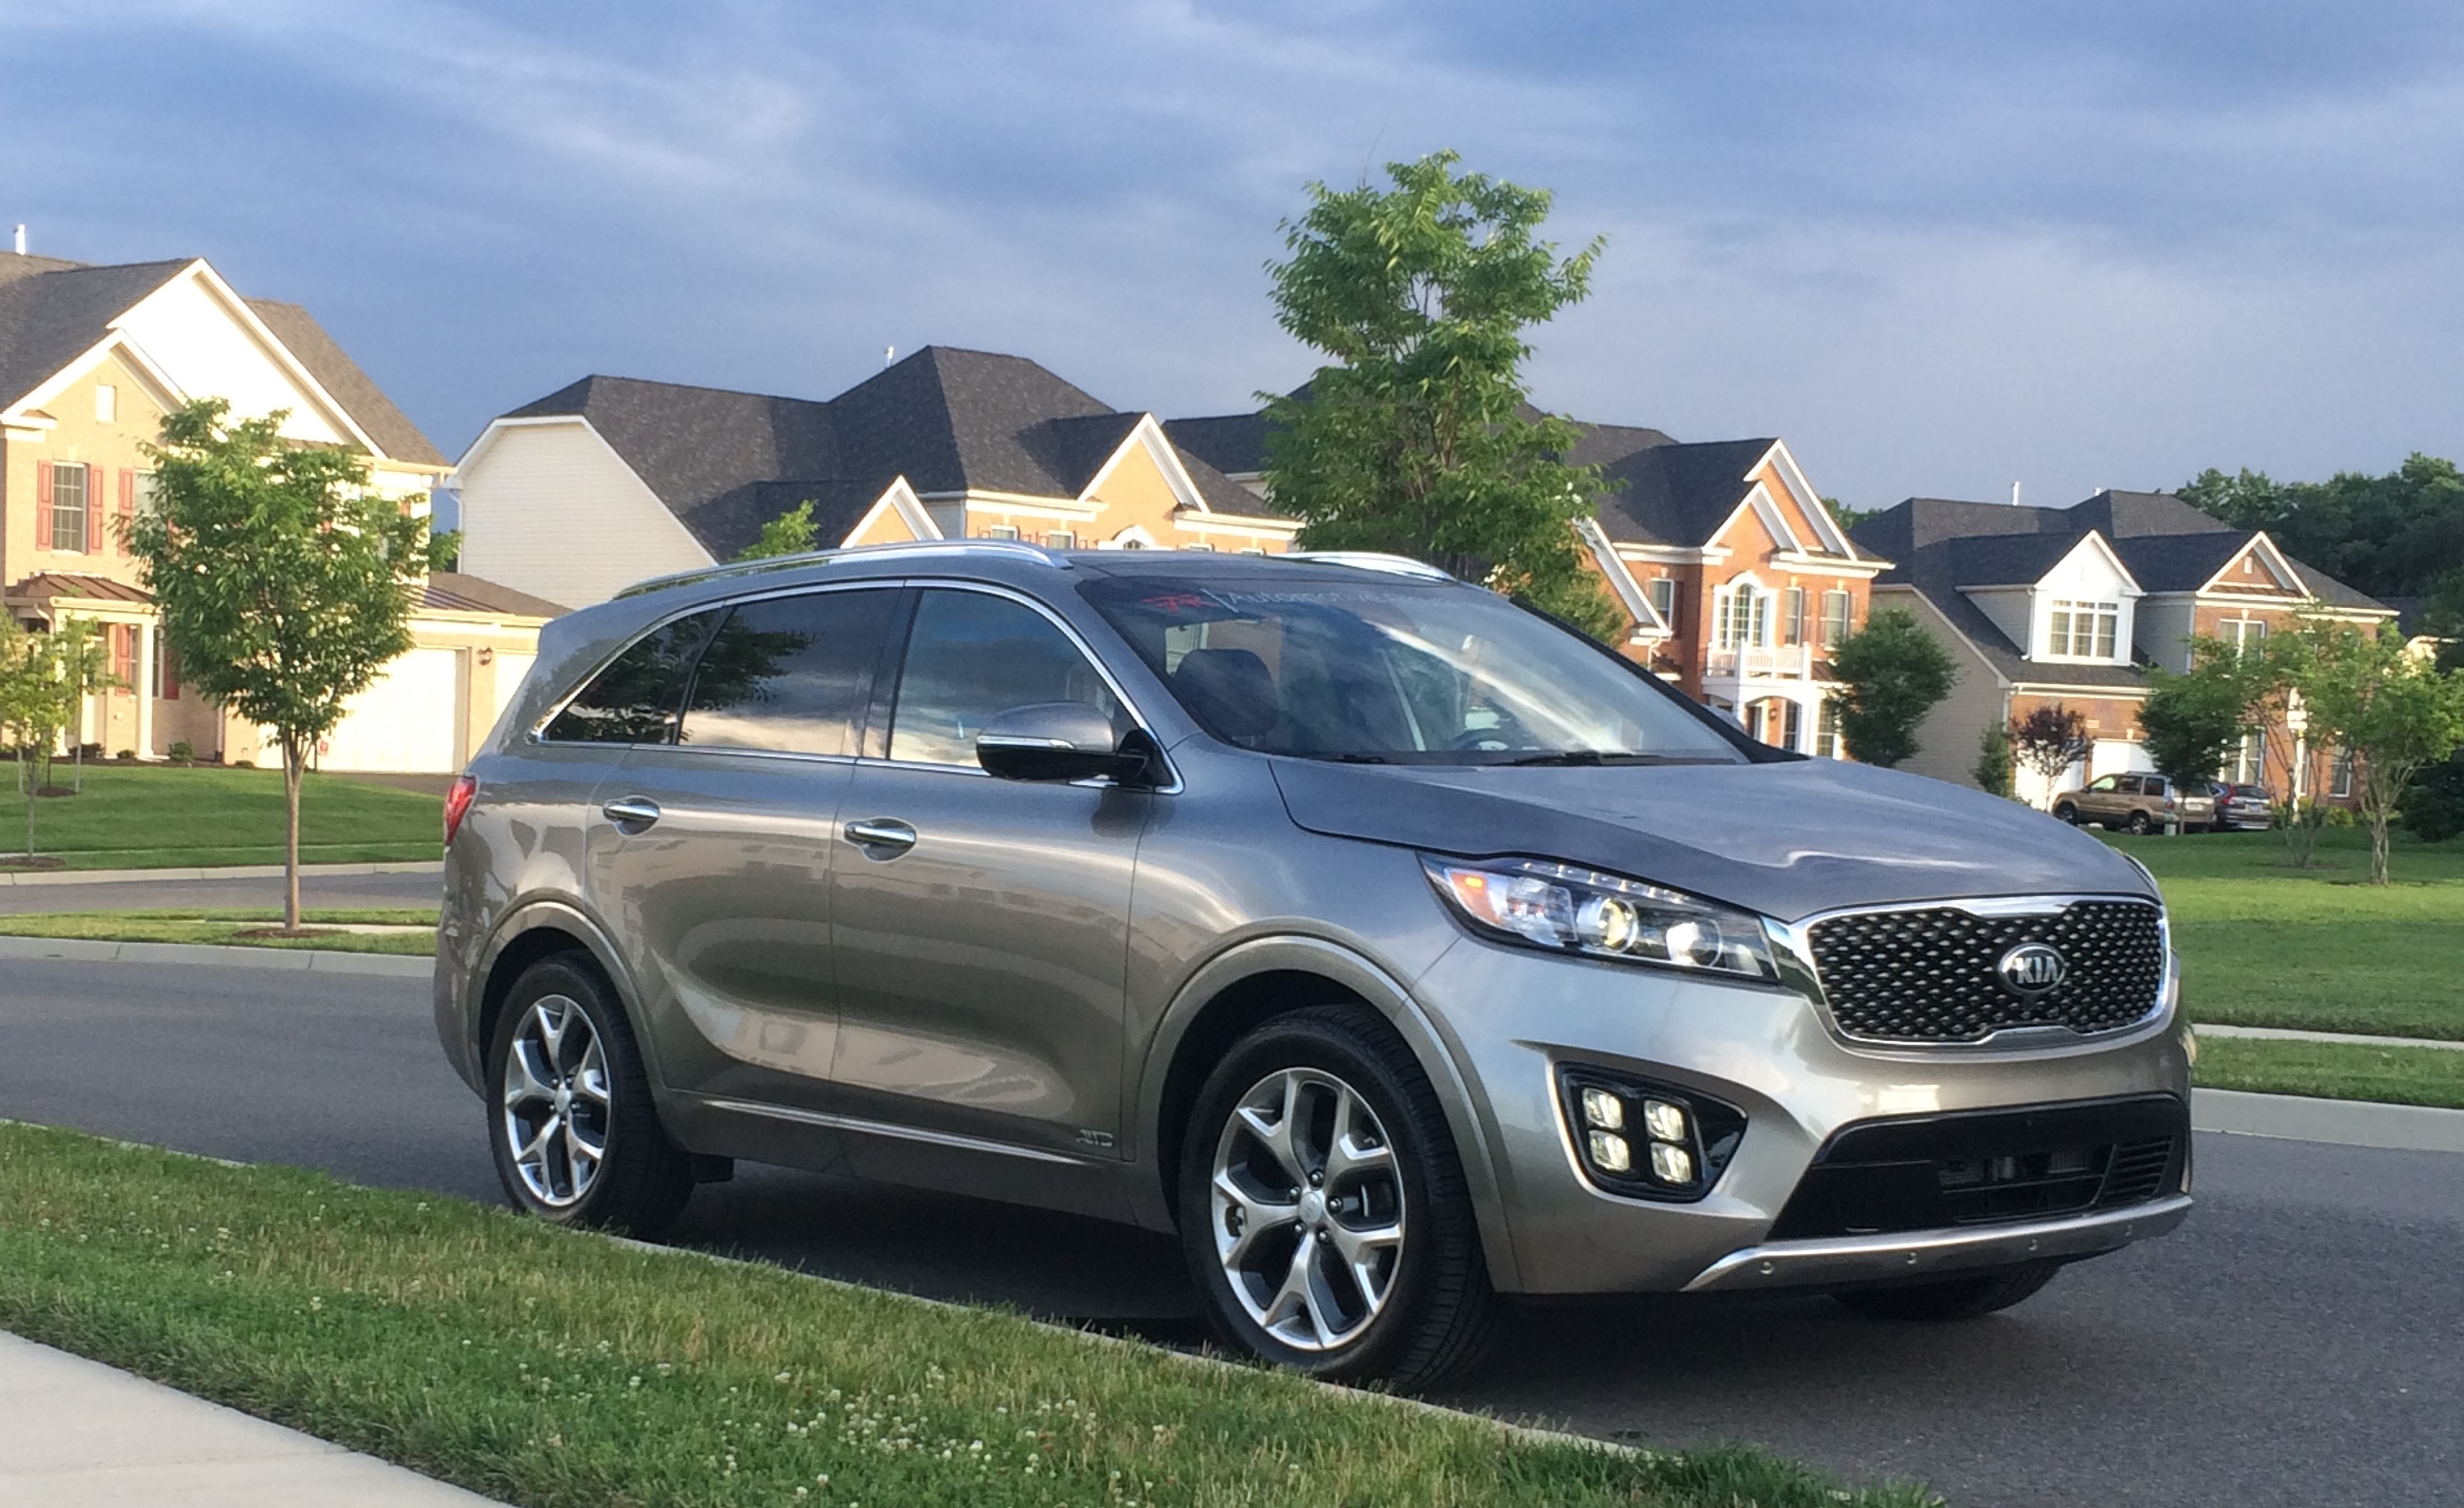 Kia Sorento Lx >> 2016 KIA Sorento SXL AWD: Ciers Family Road Trip | AUTOMOTIVE RHYTHMS